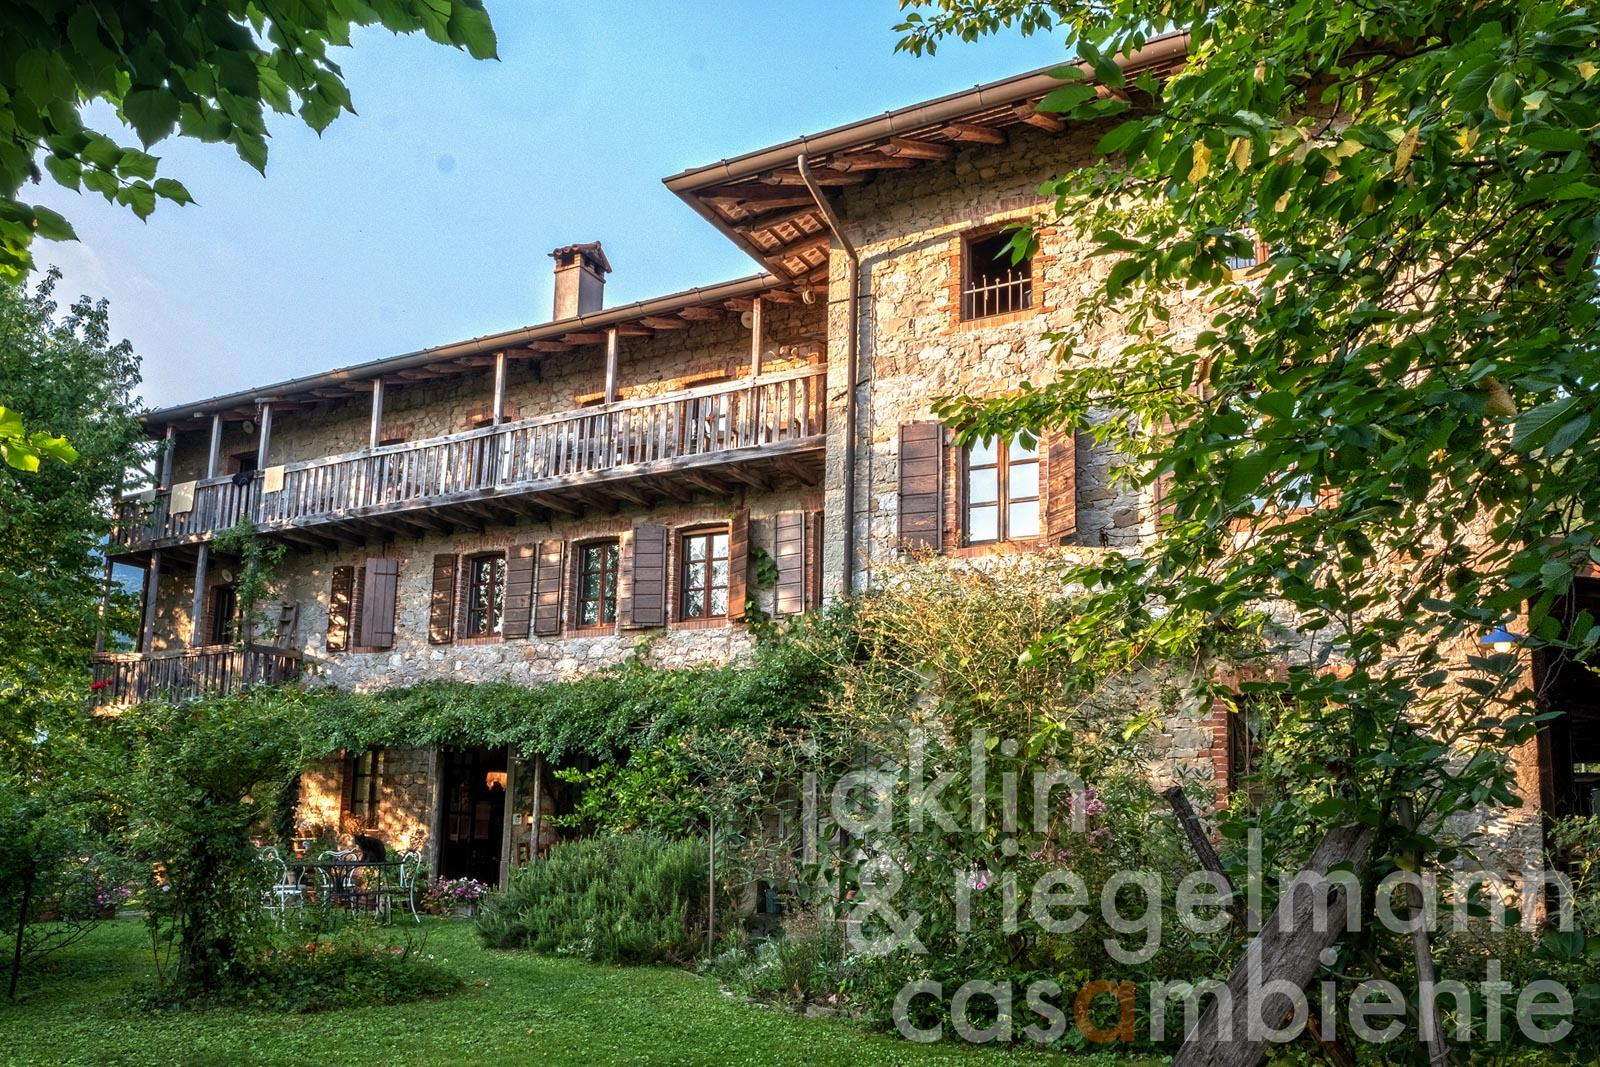 Unique historic country house in Friuli with agriturismo and organic wine production